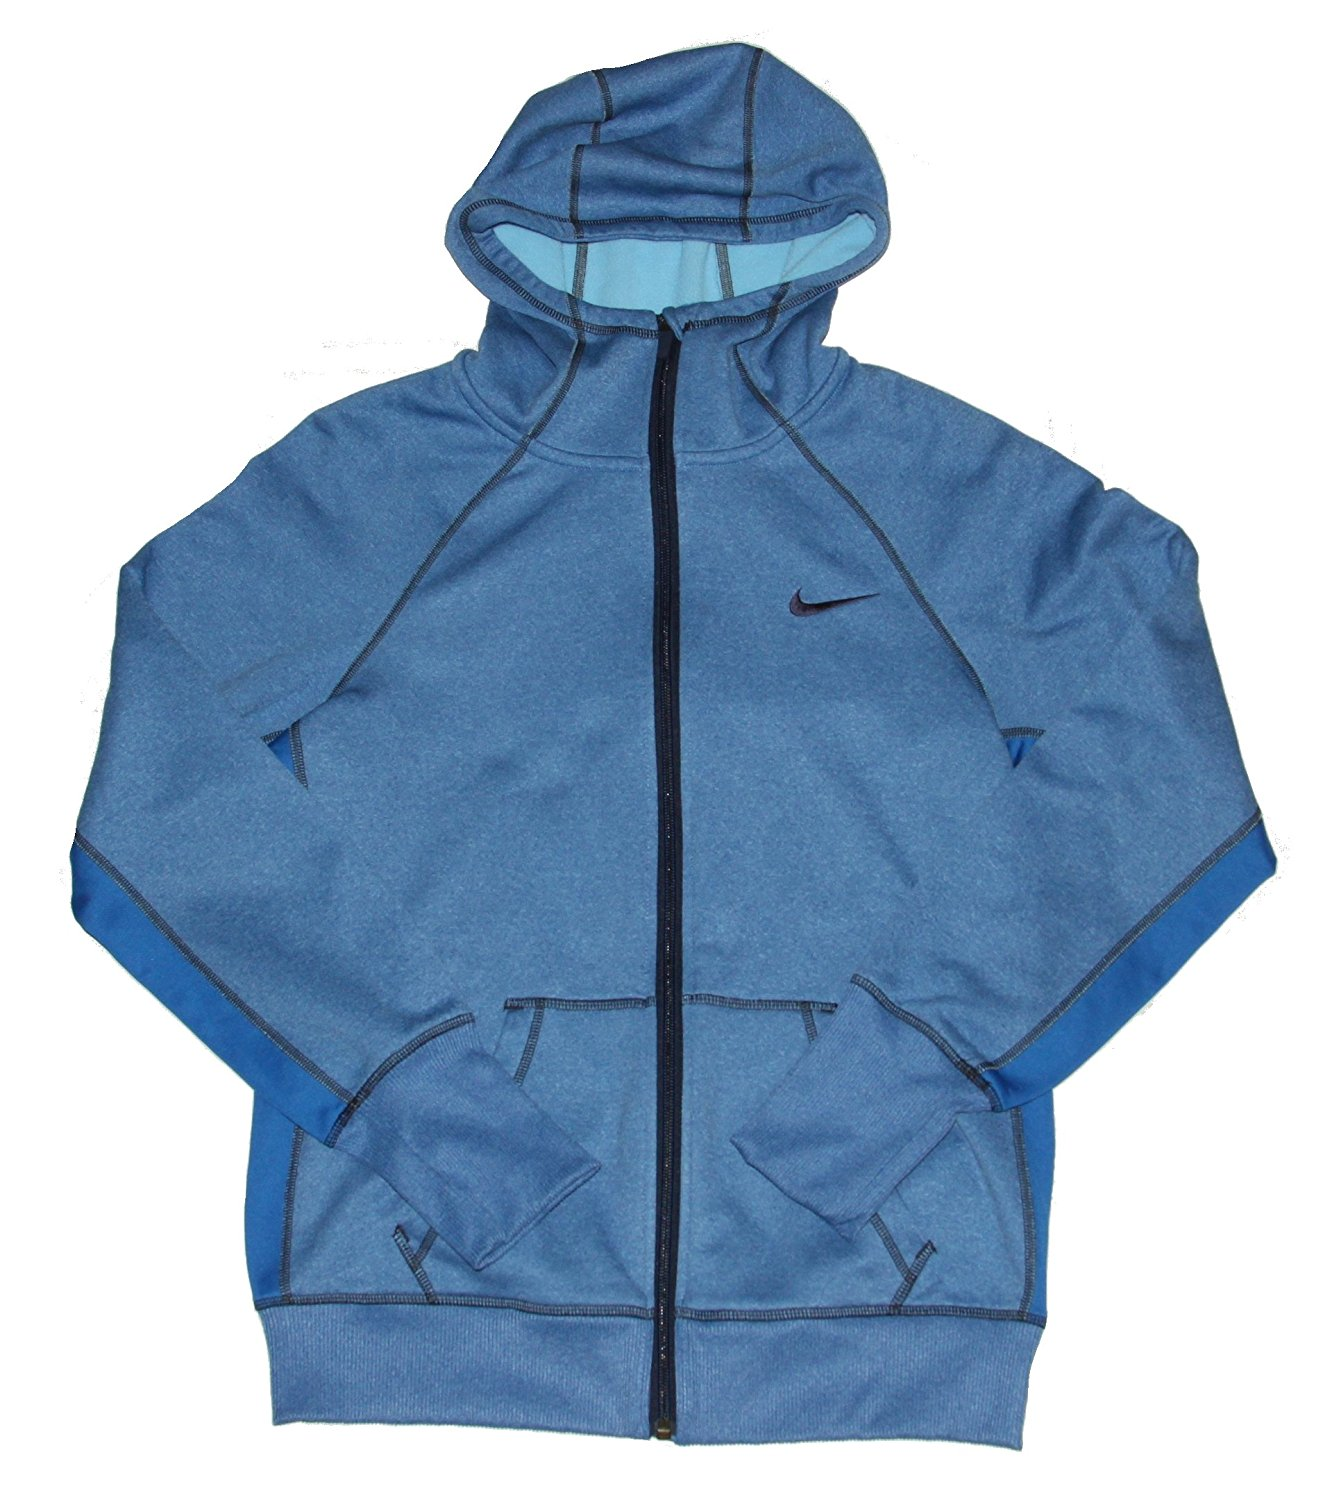 c13a9bba9f4b8 Buy Nike Womens Therma Fit All Time Full Zip Hoodie Sweatshirt Blue ...